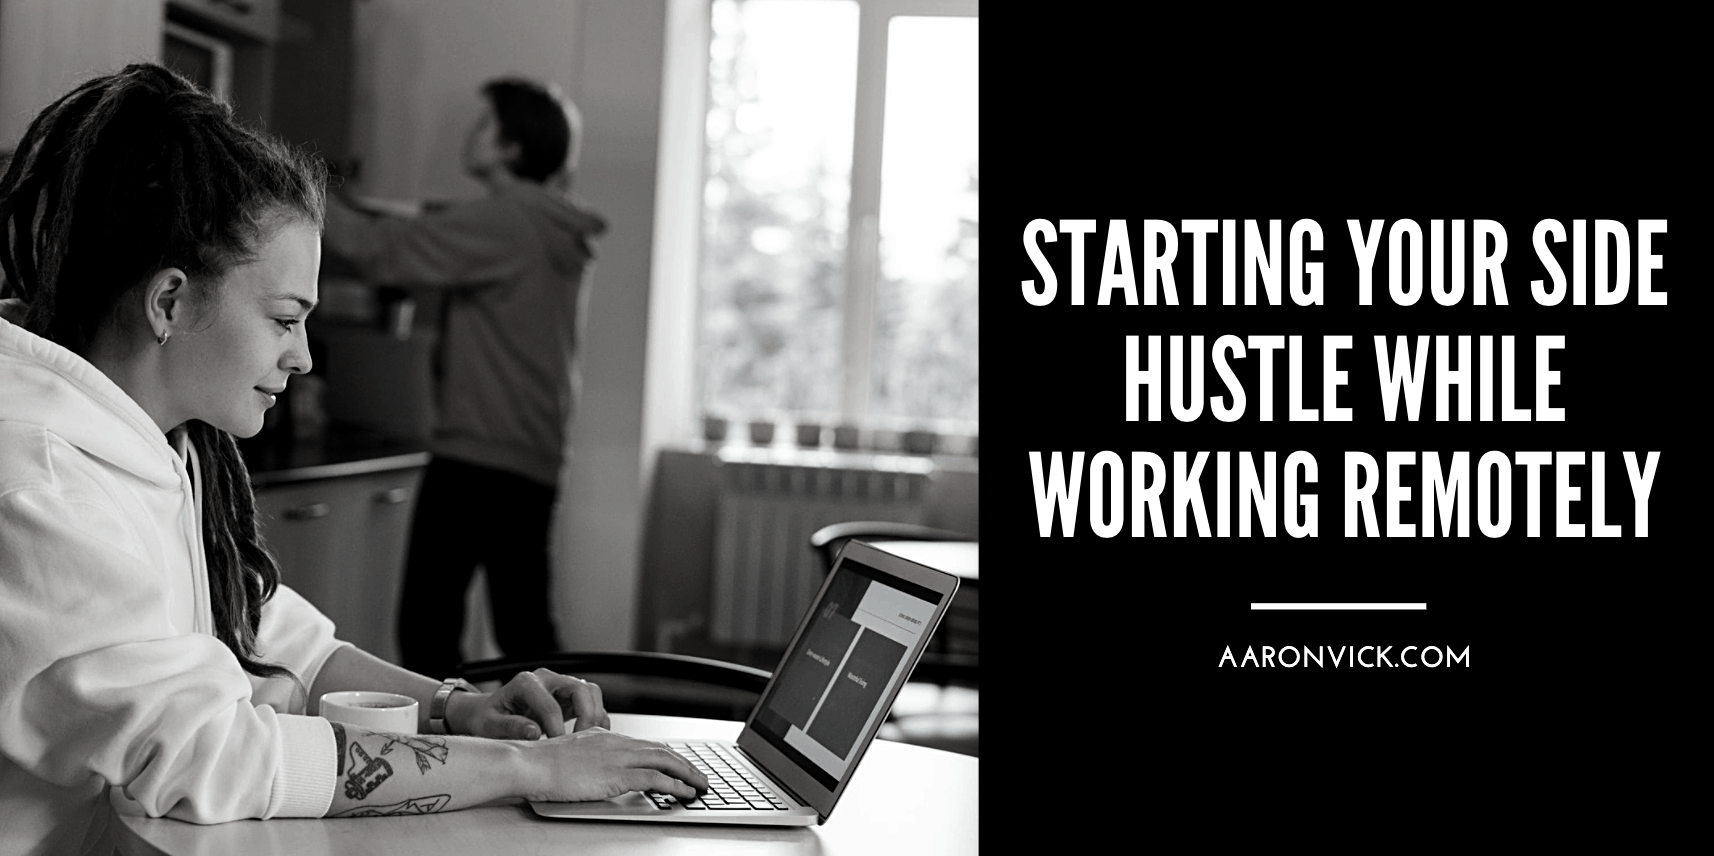 Aaron Vick - Starting Your Side Hustle While Working Remotely